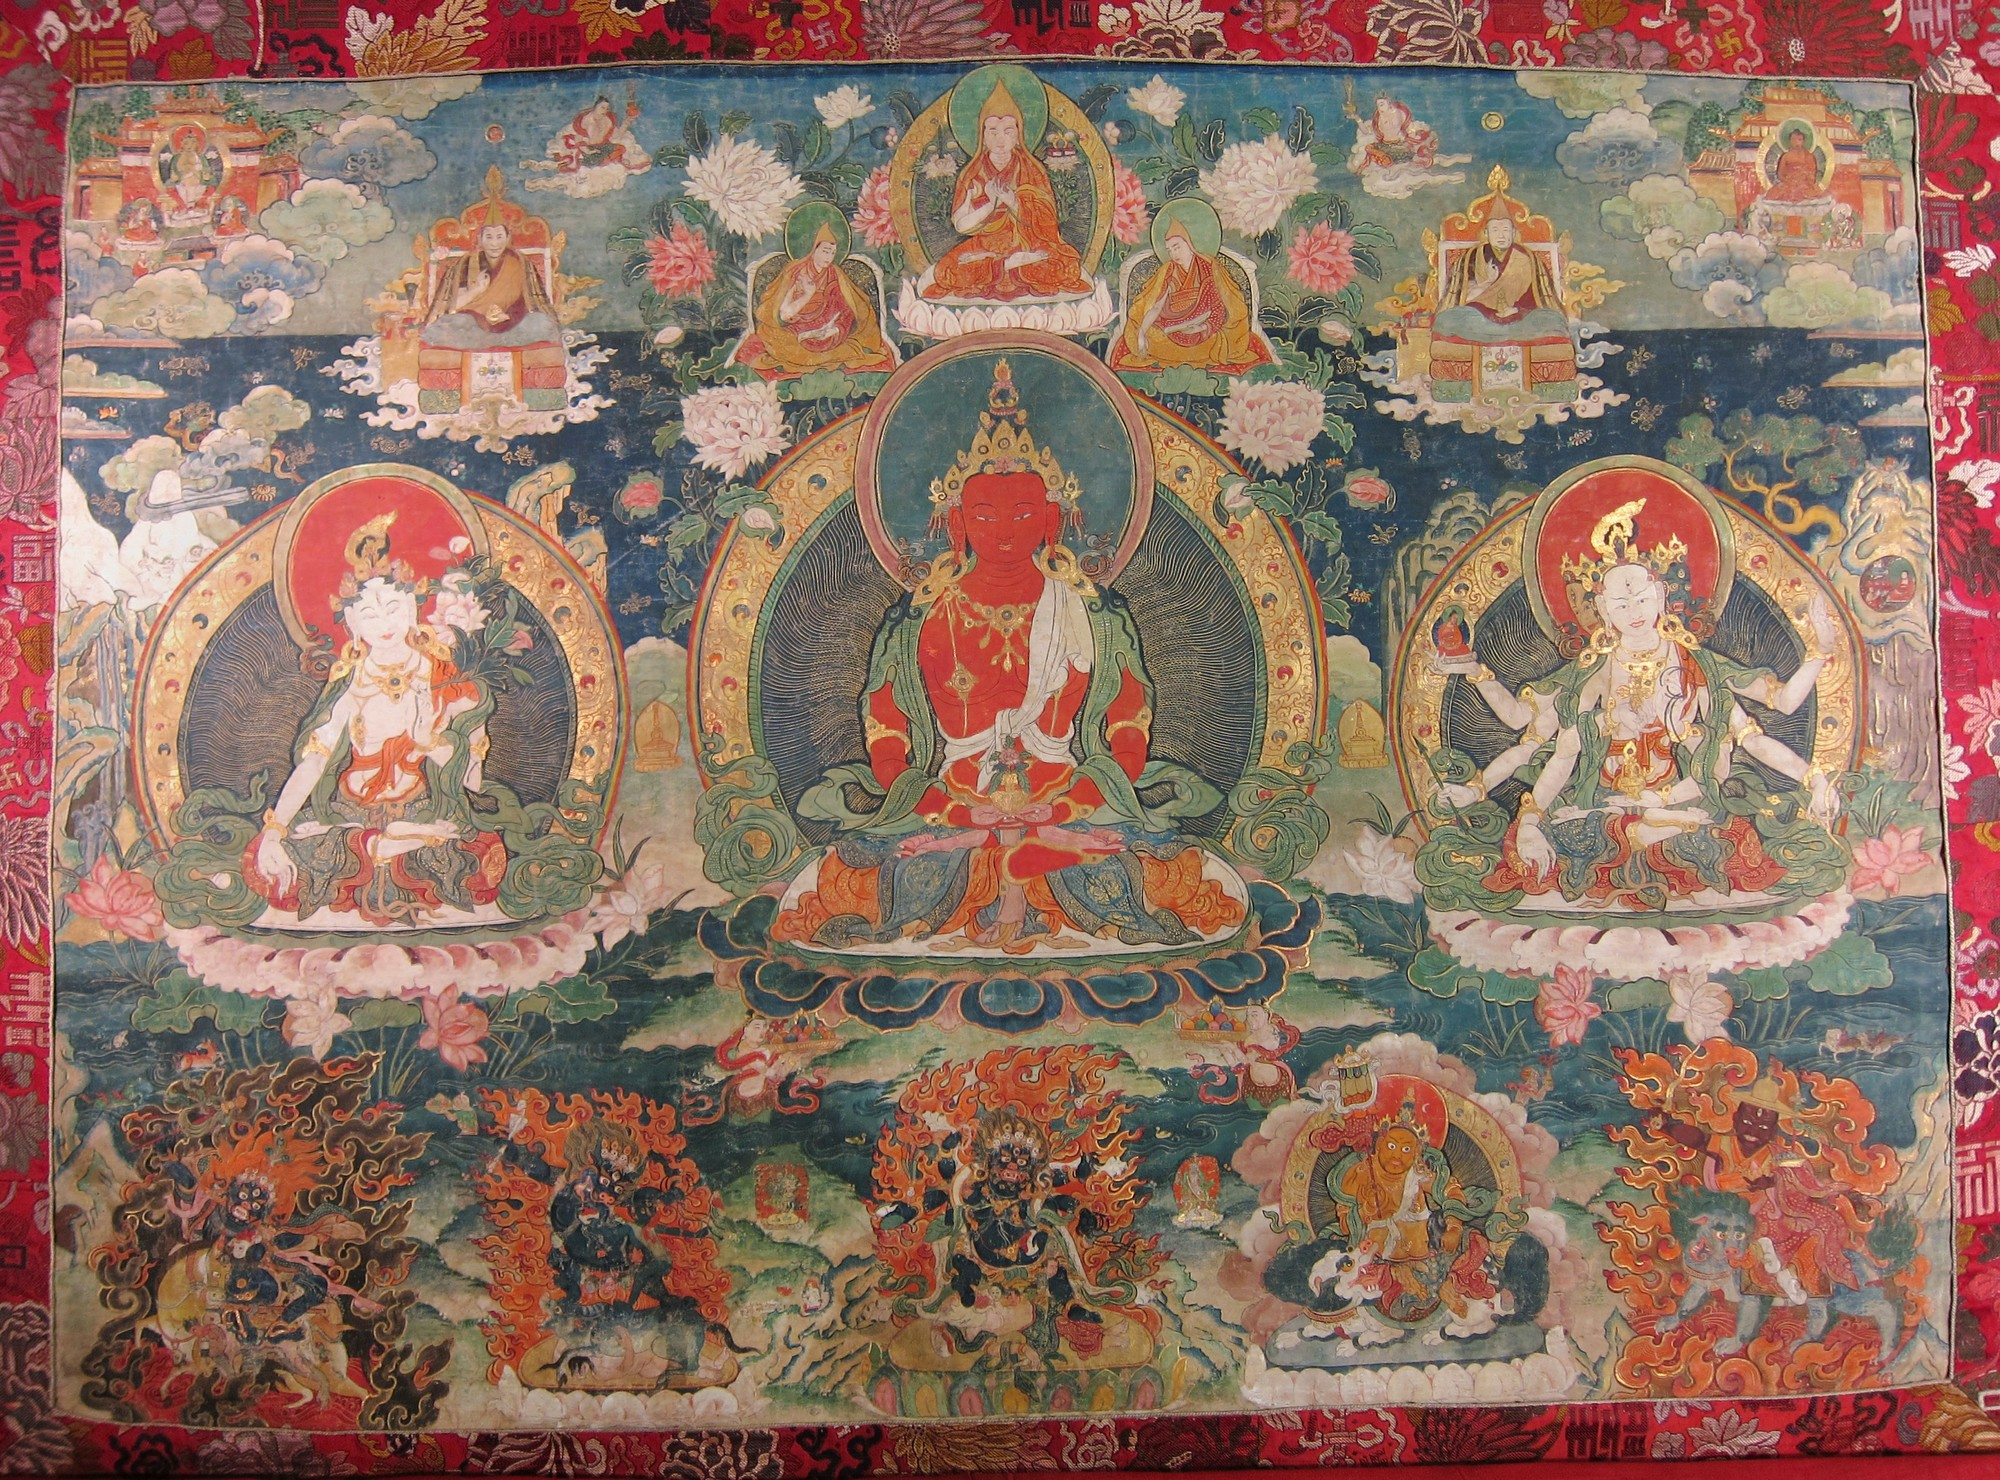 A beautiful thangka of the three long life deities as the centre images. Click on image to enlarge. For a description of the deities, click here.